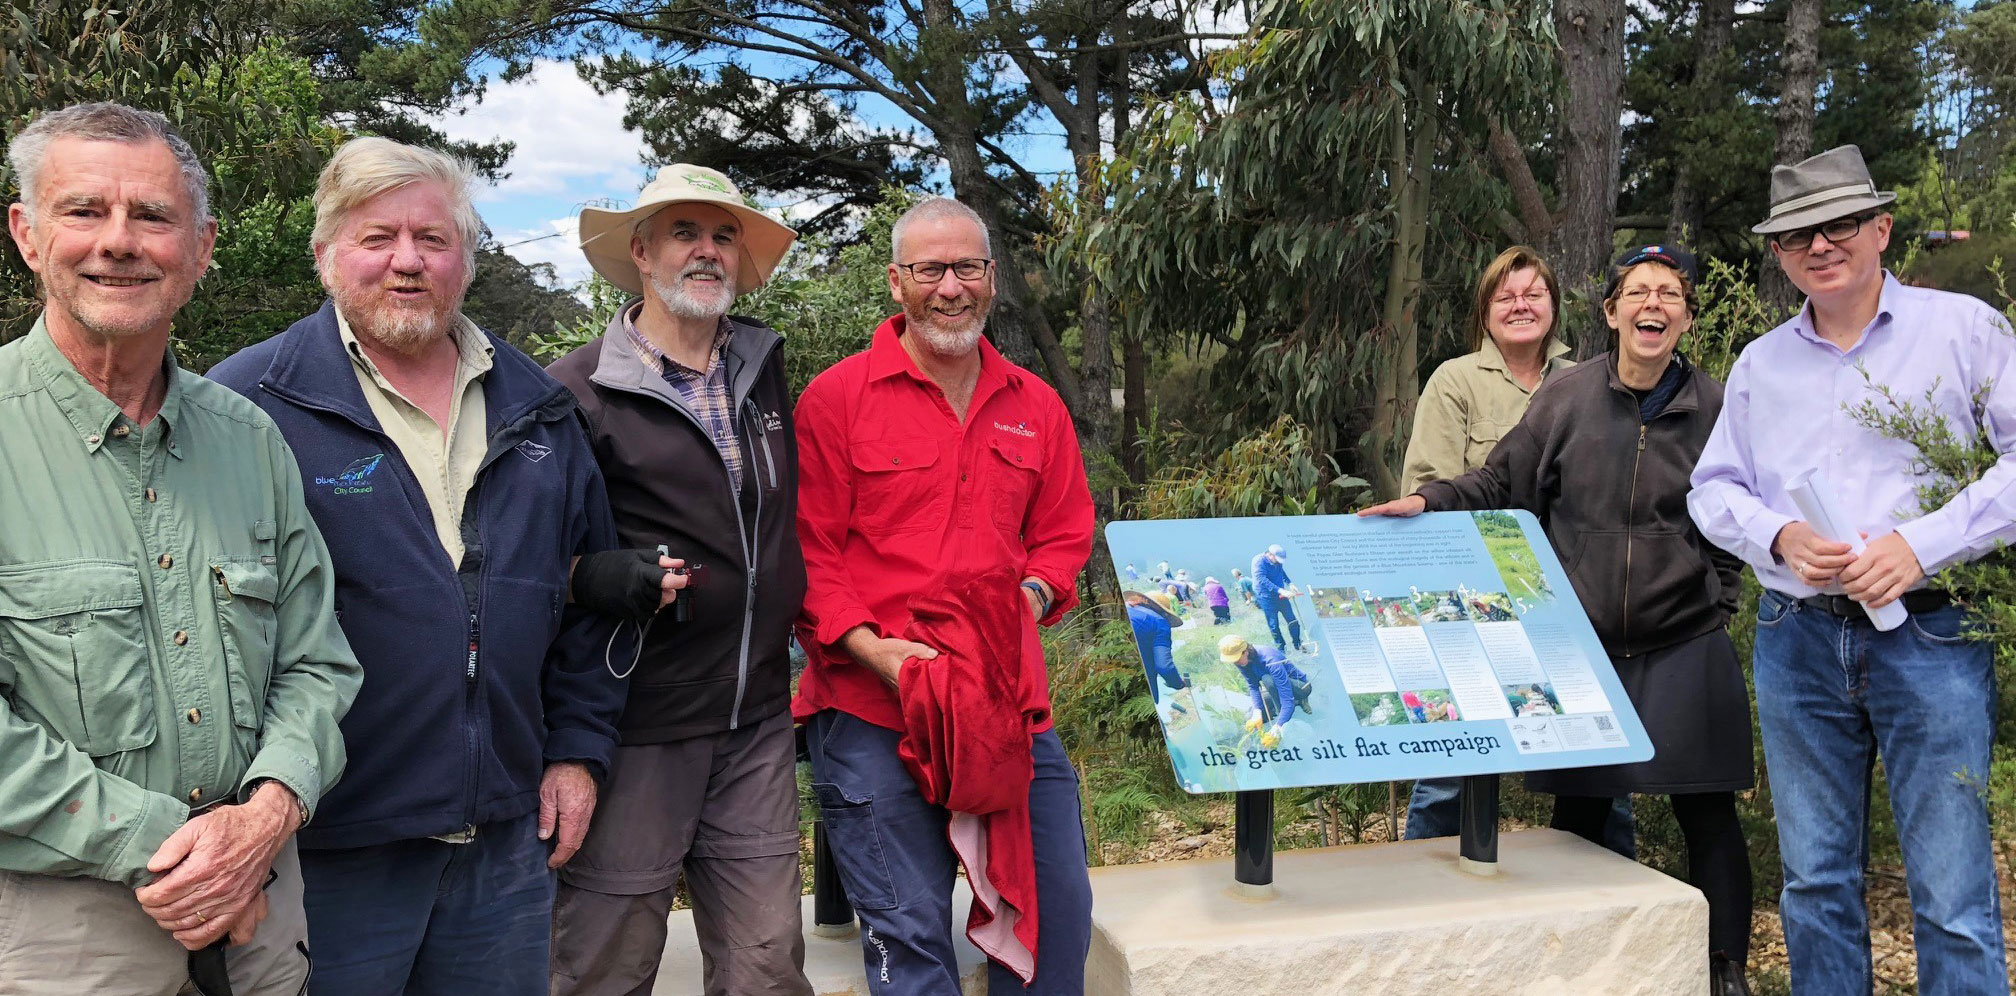 Mayor, Cr Mark Greenhill (far right) congratulates the Popes Glen Bushcare Group and supporters for completing an ambitious environmental restoration project over a six year period.